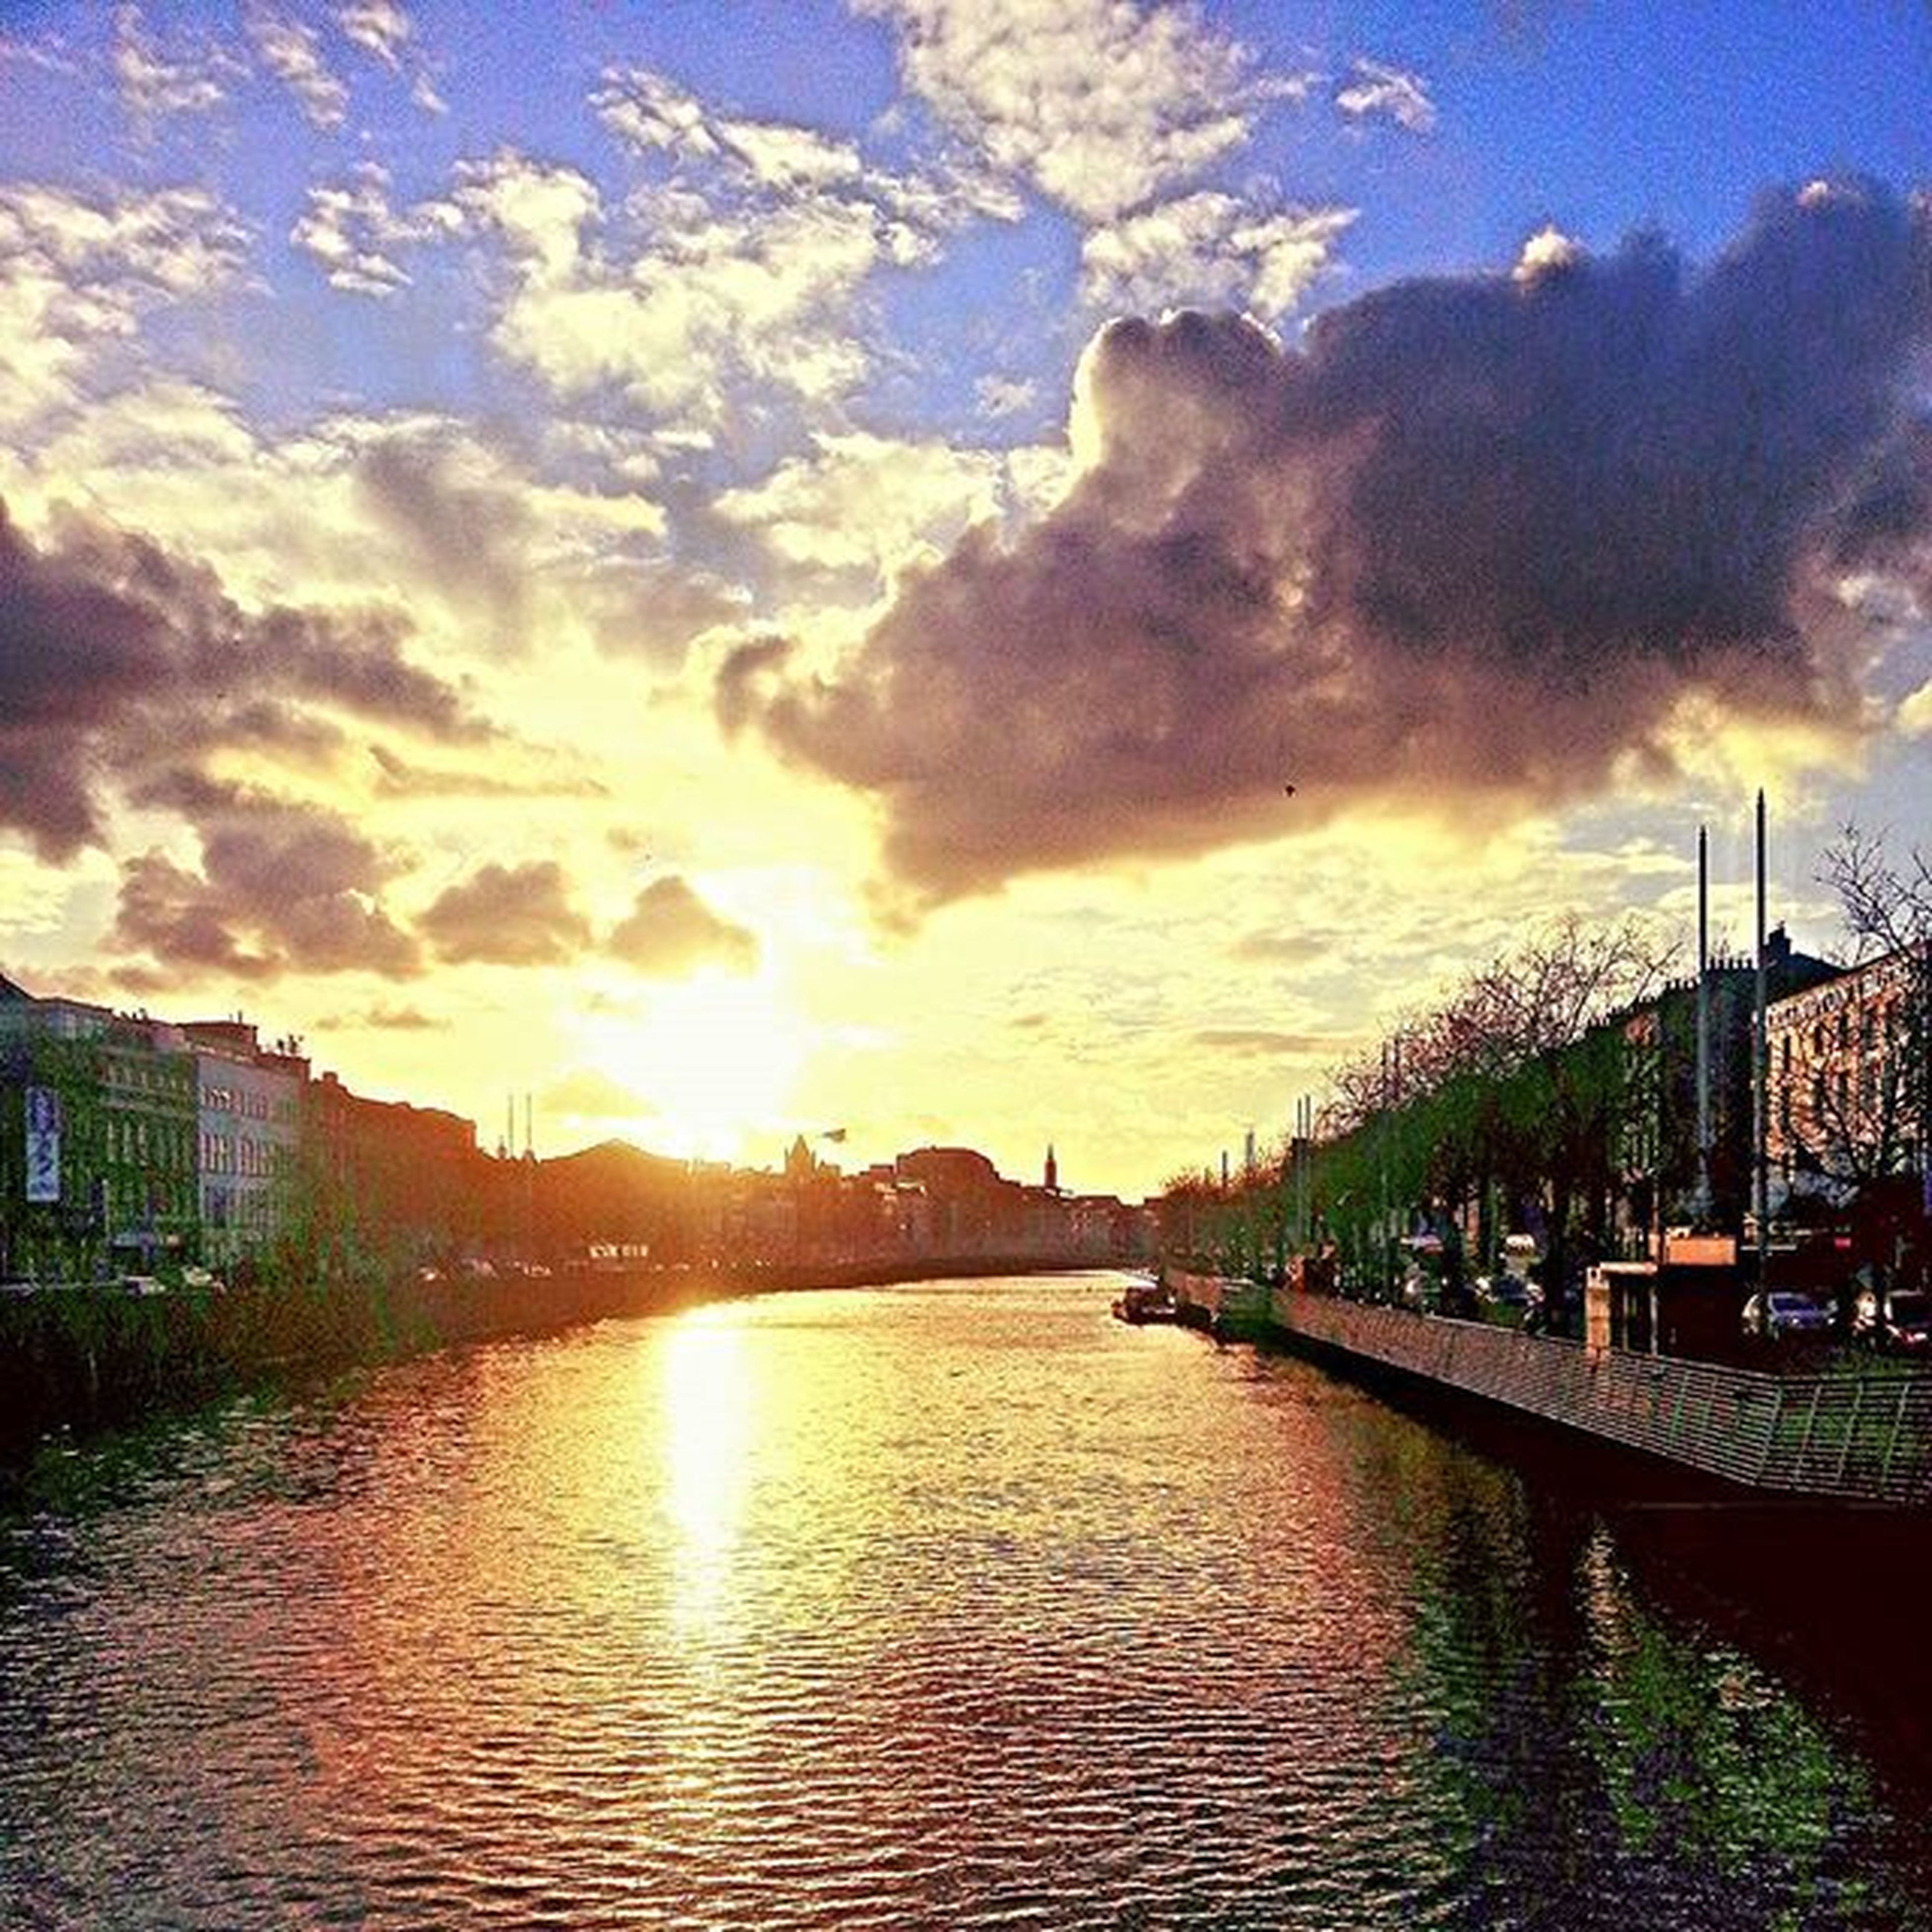 building exterior, architecture, built structure, sky, sunset, water, city, cloud - sky, river, sun, waterfront, cloud, canal, sunlight, residential building, cityscape, residential structure, building, residential district, reflection